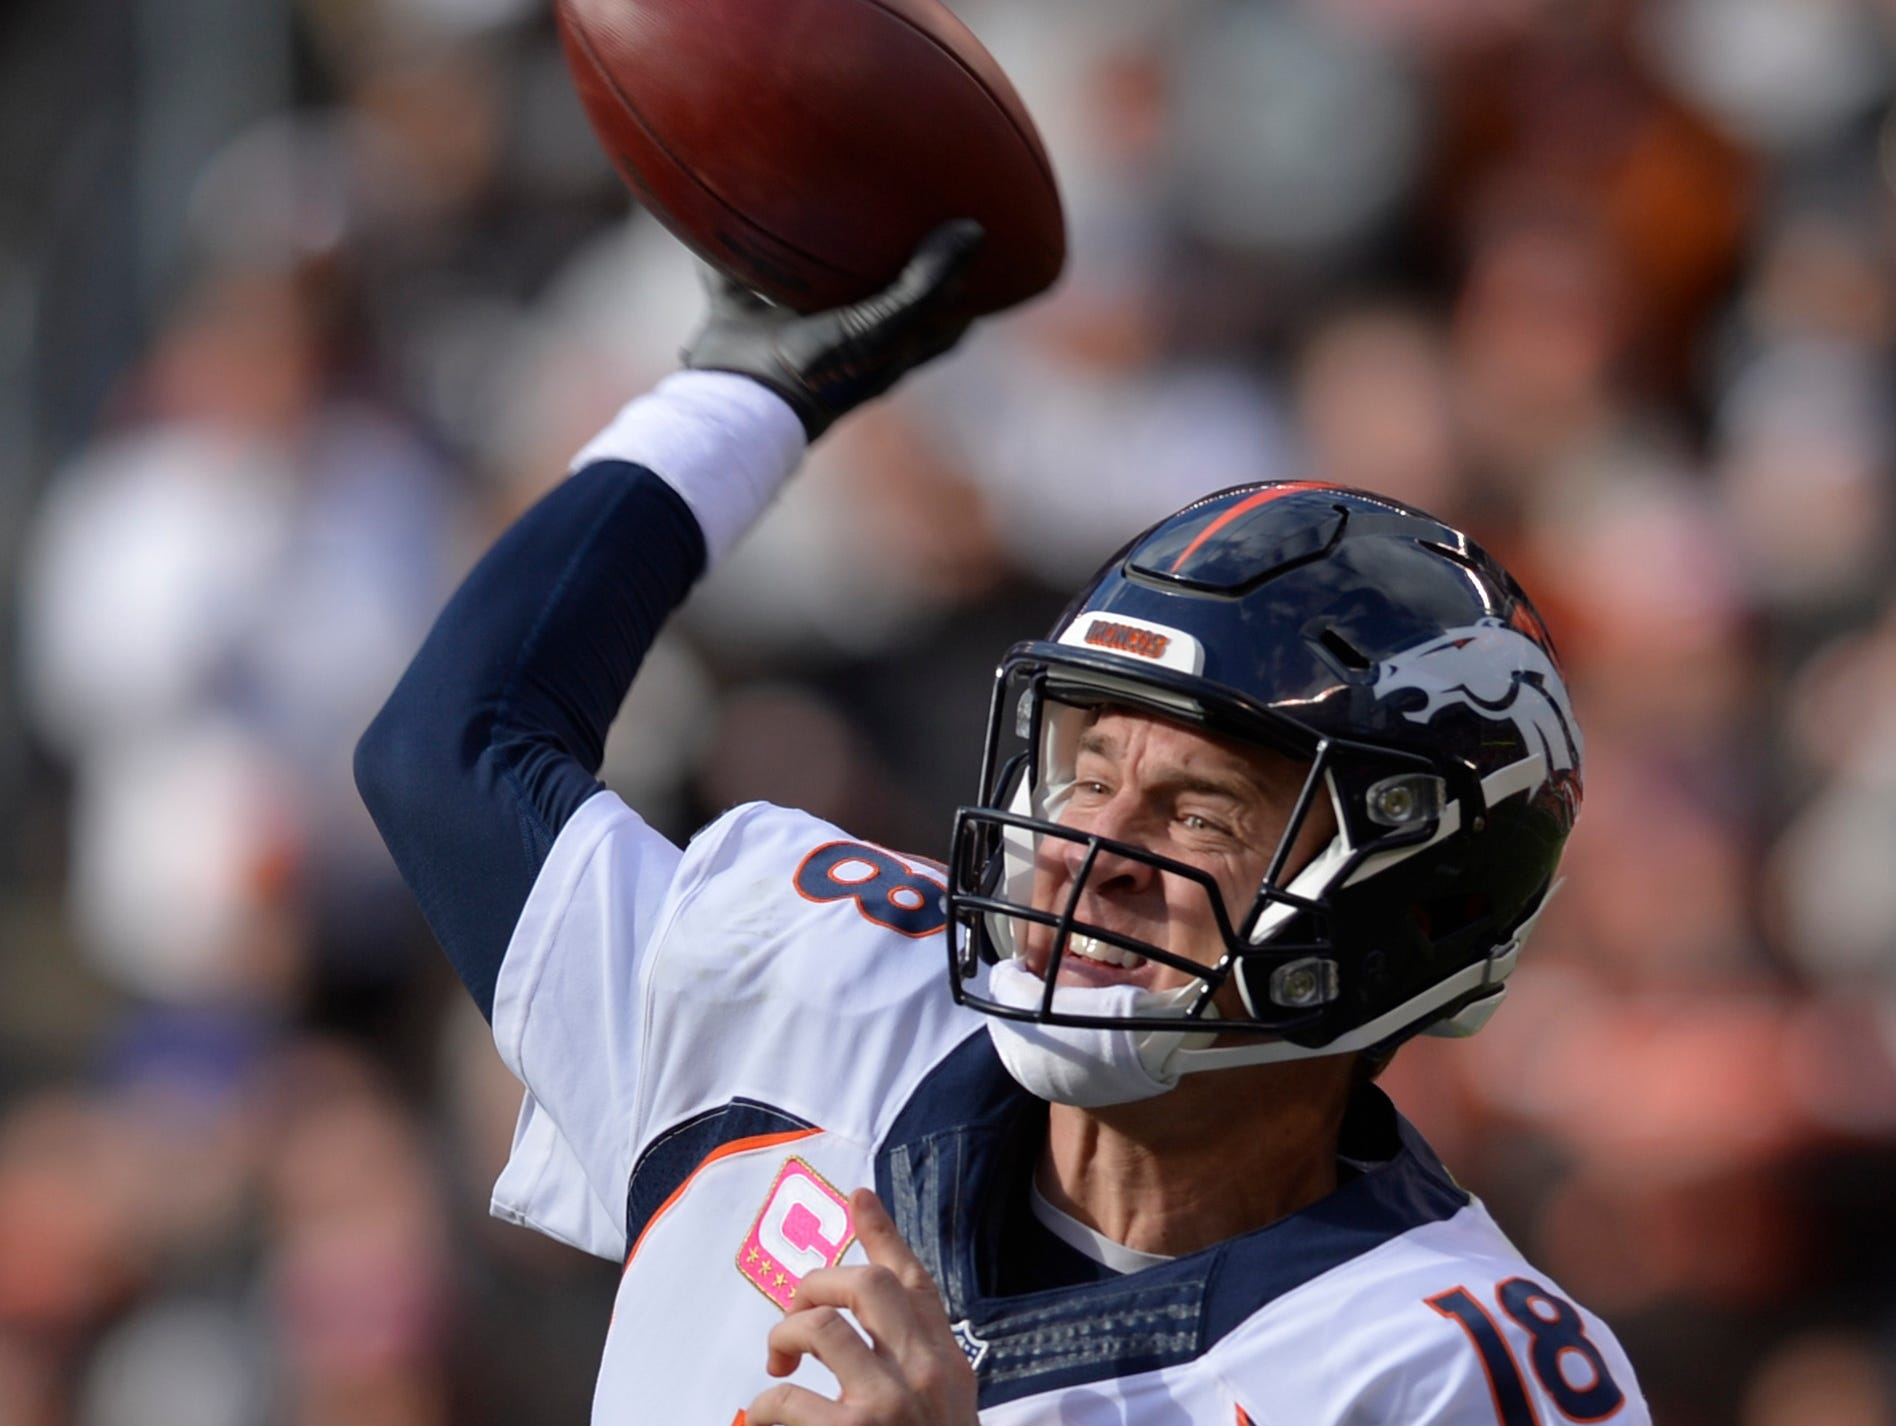 Peyton Manning will be the guest speaker at the inaugural Middle Tennessee Sports Awards presented by Farm Bureau Health Plans.